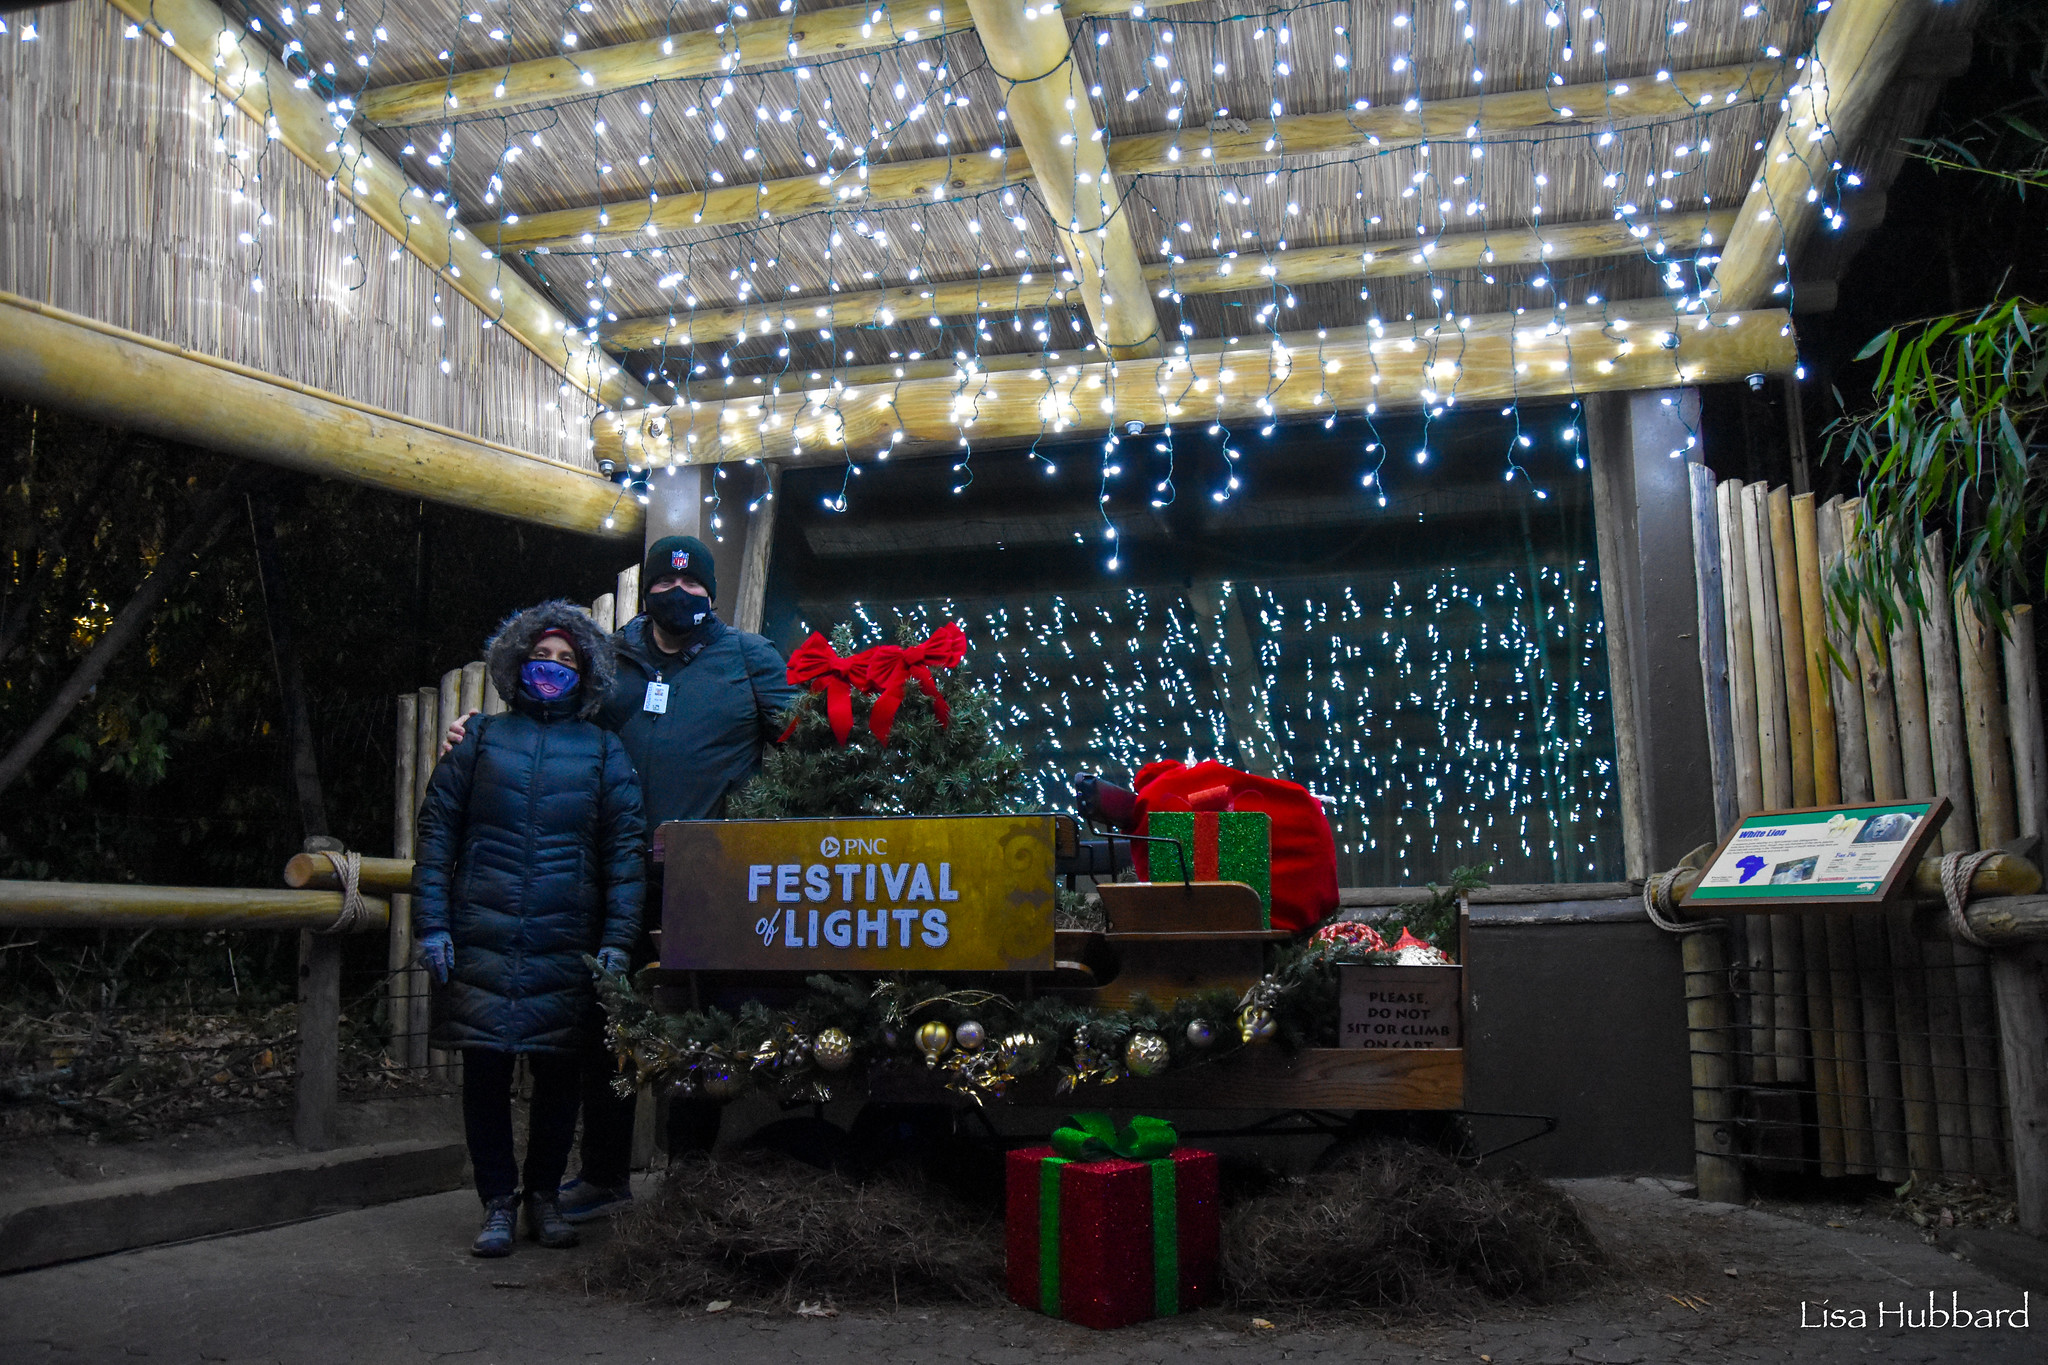 festival of lights couple standing by festival of lights sign